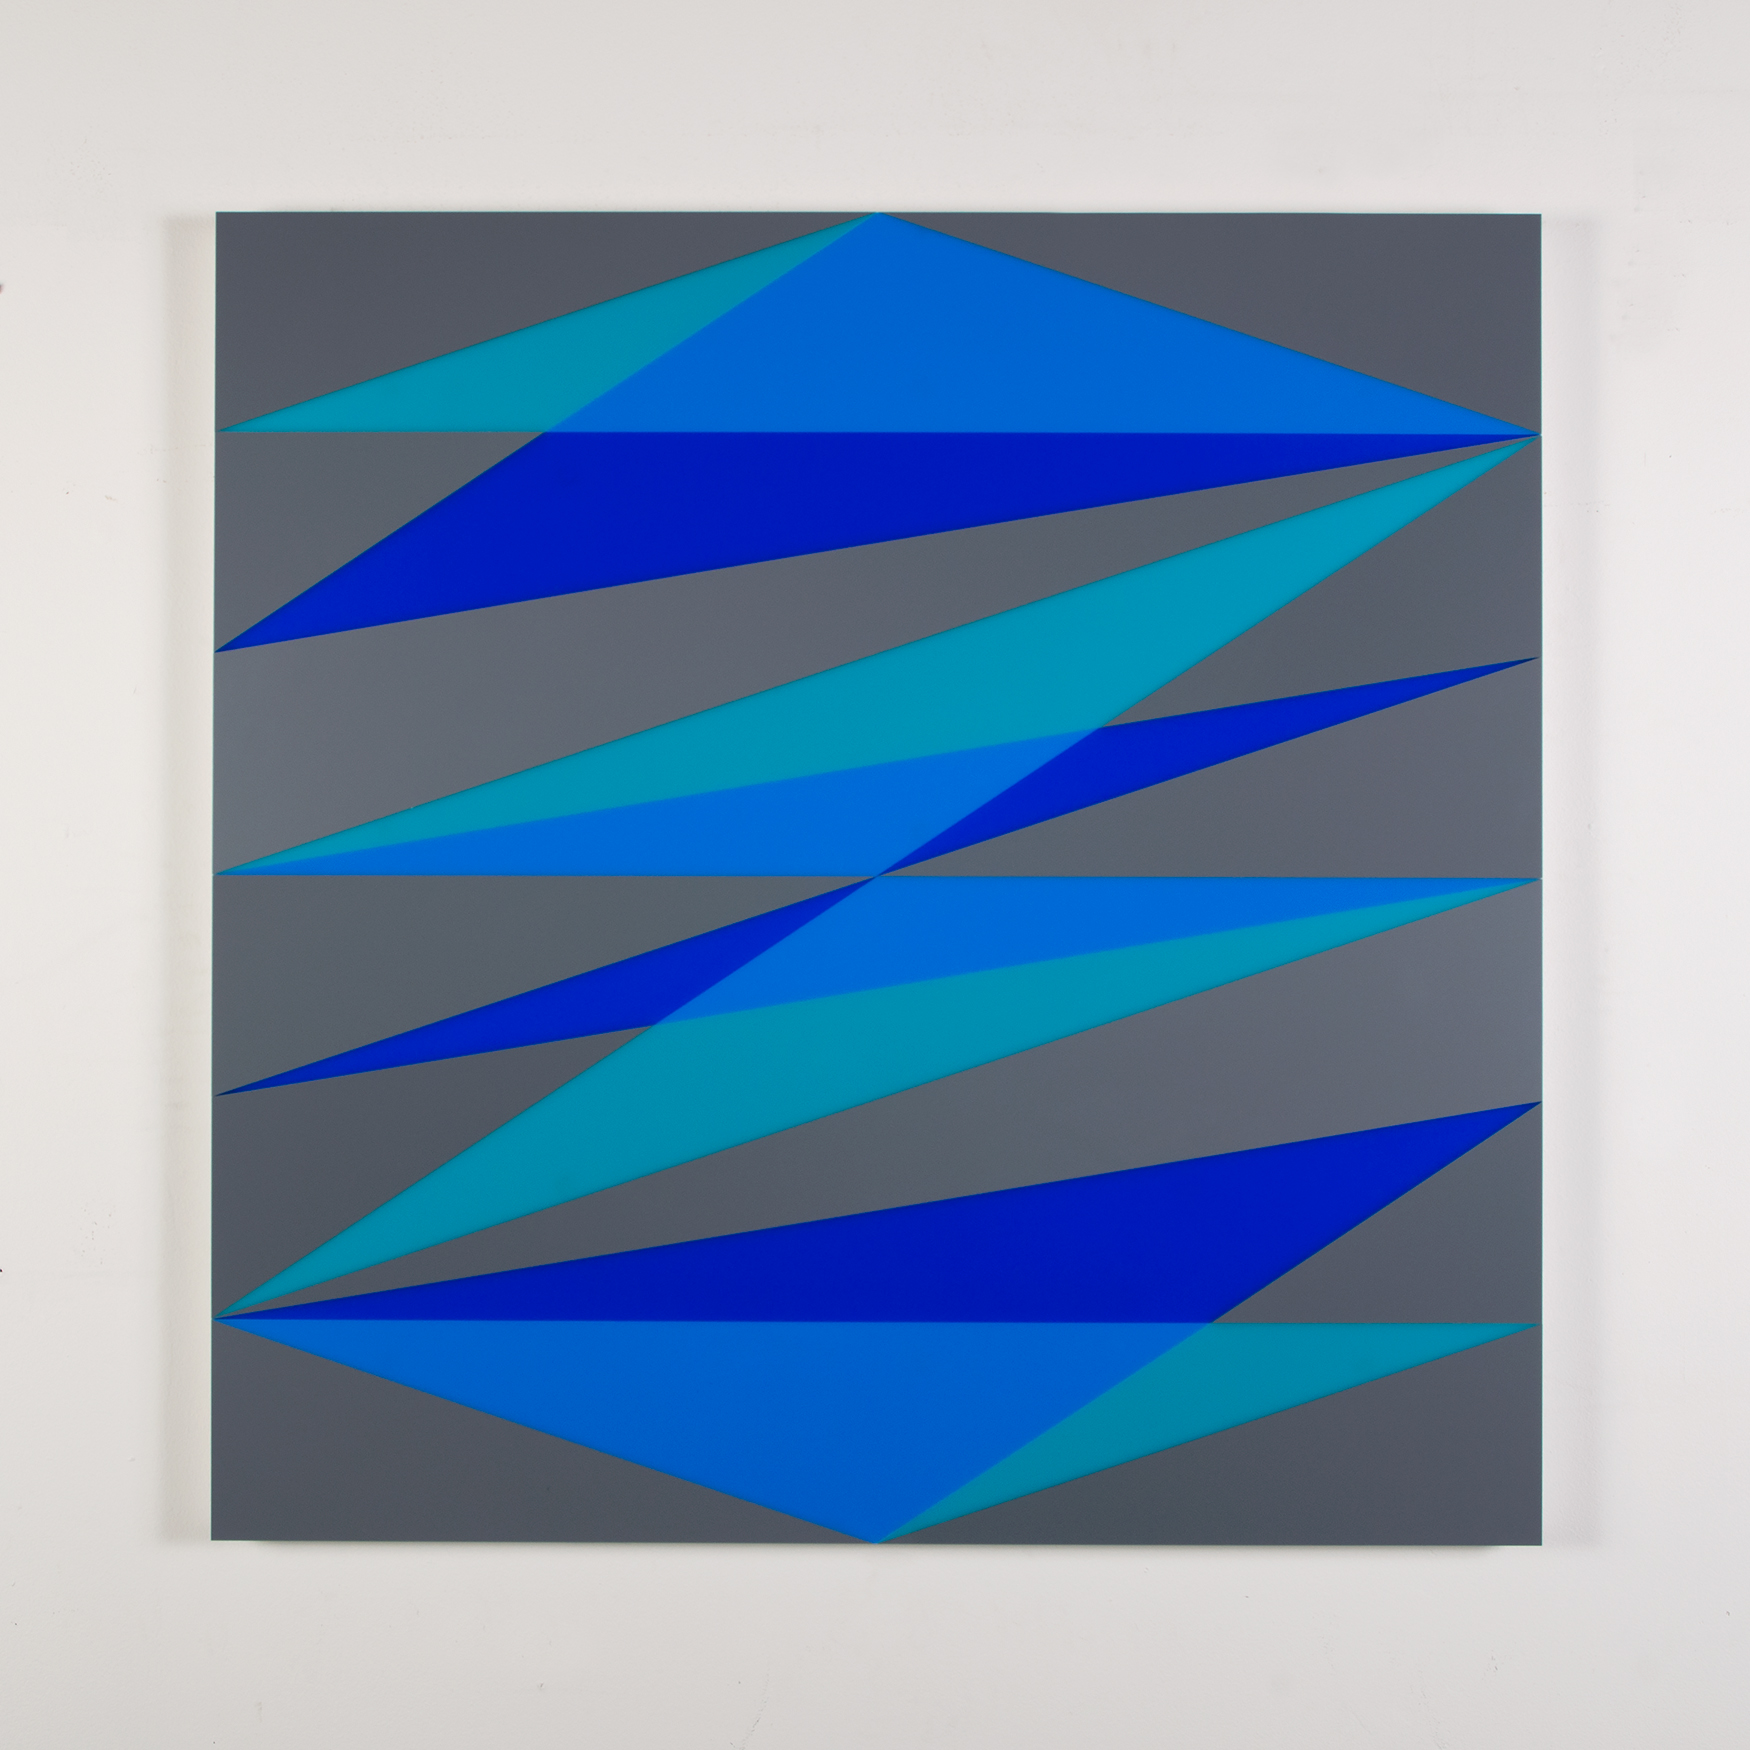 "Composition in 2308 Turquoise, 2648 Blue, 2051 Blue and 3001 Gray Colored Plexiglas mounted on panel 37 1/2"" x 37 1/2"" 2017"